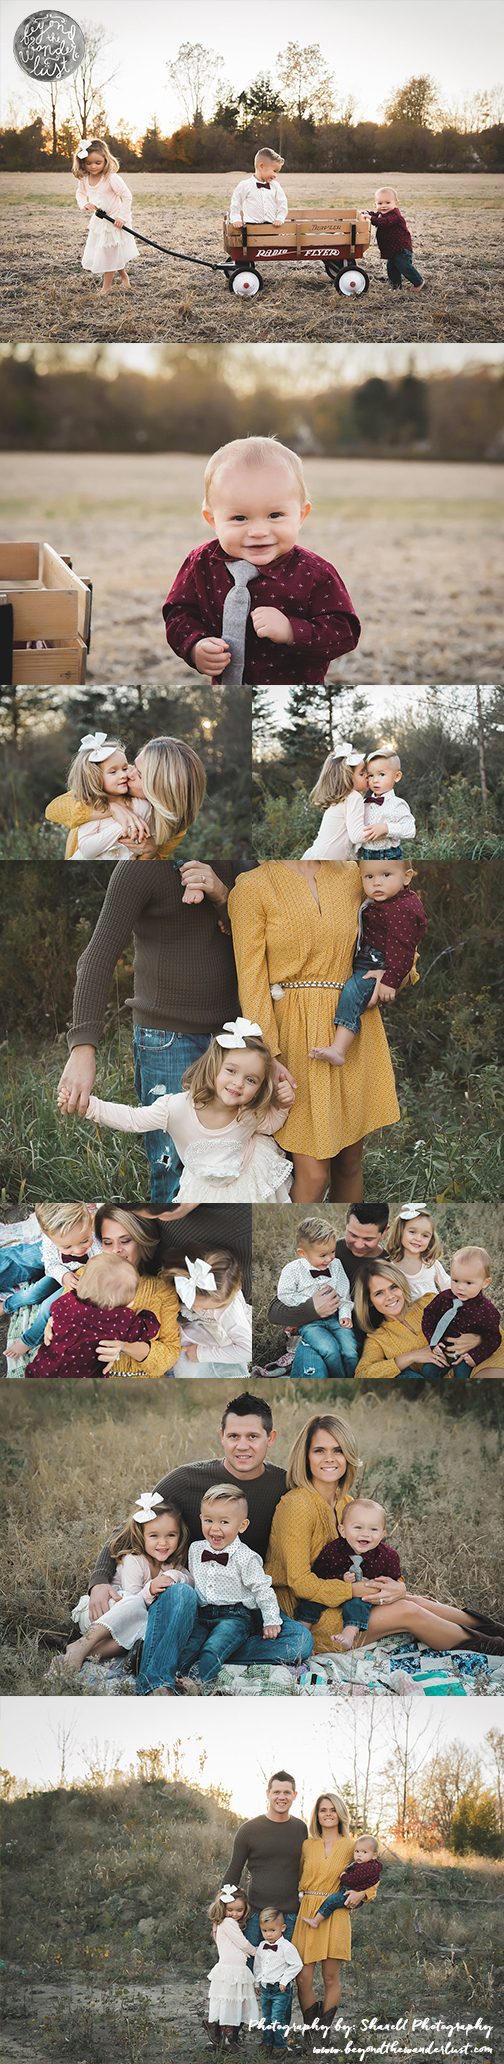 Fall family pictures, family of 5 poses, what to wear for family pictures, family